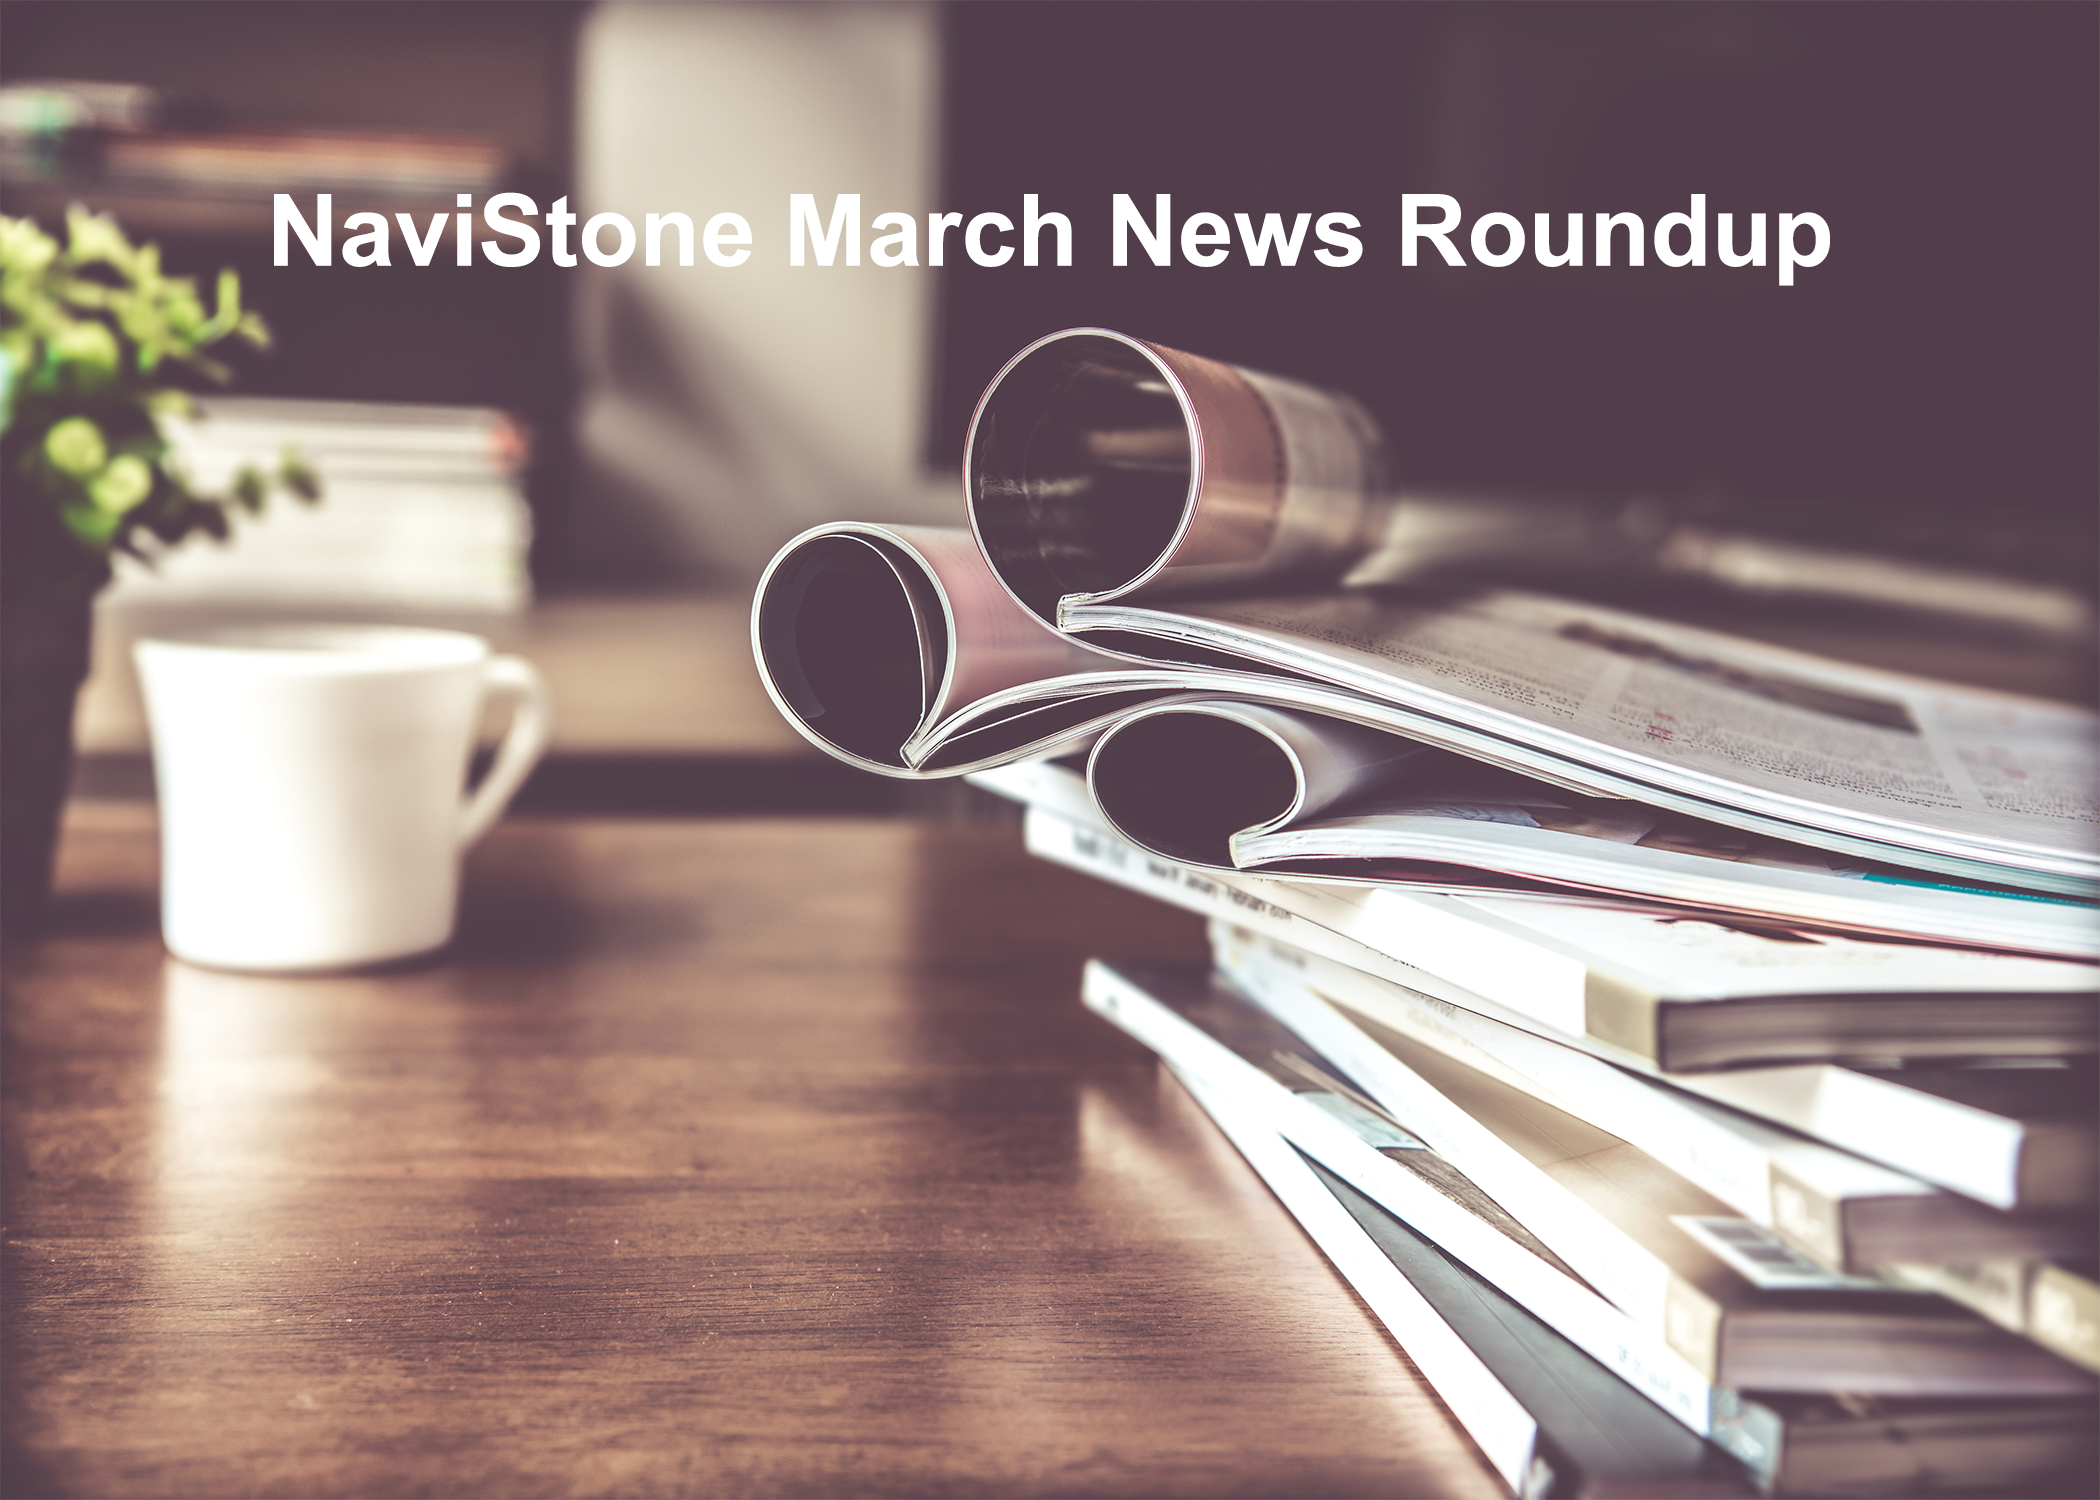 March News Roundup